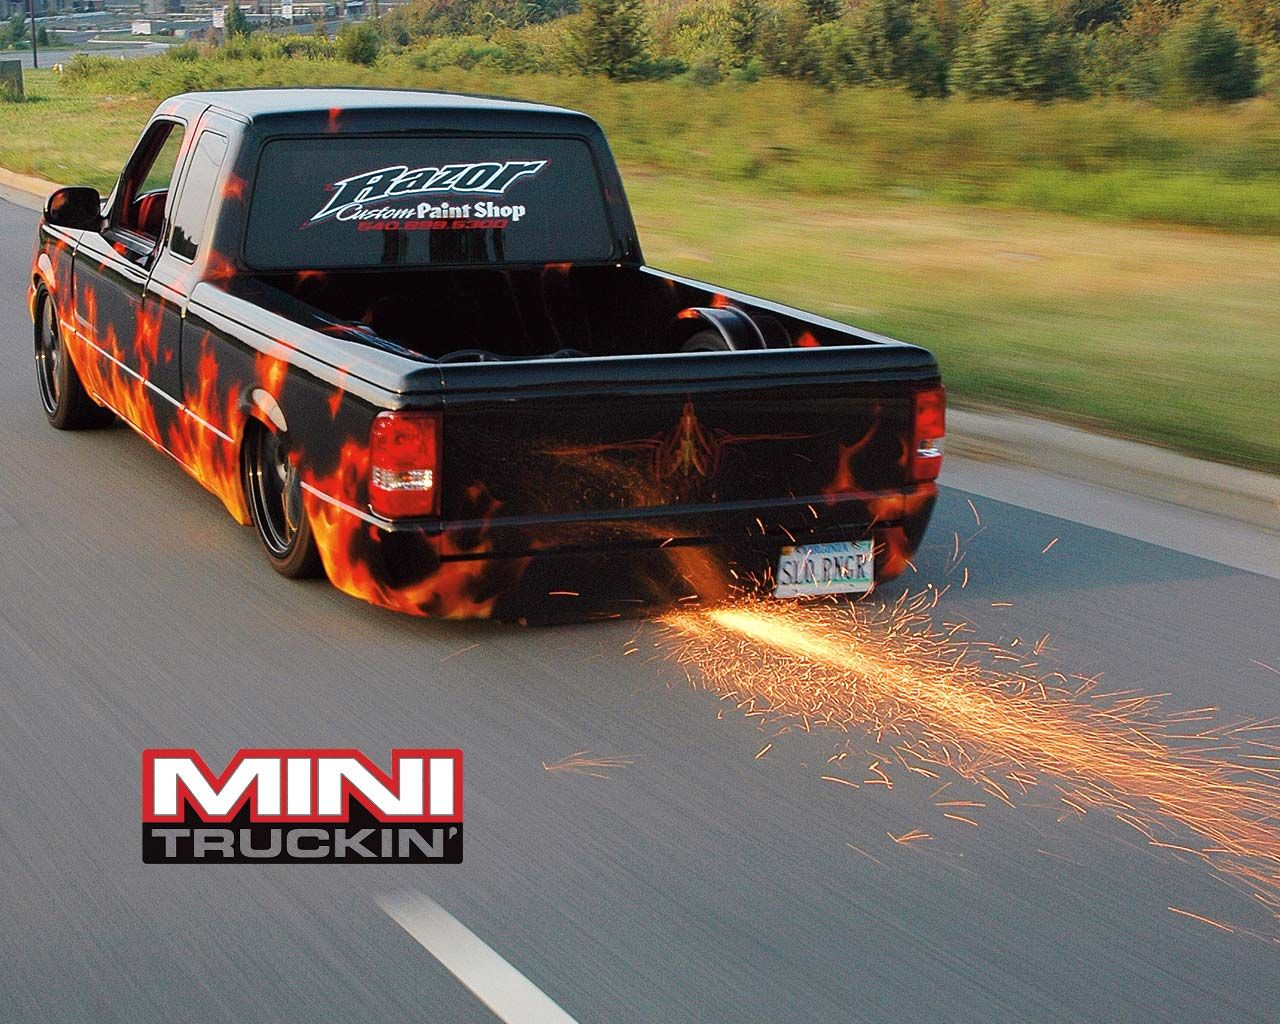 Image detail for -... 1280x1024 Cars, Trucks, Lowrider, Mini, Custom, Truck, Ford, Ranger